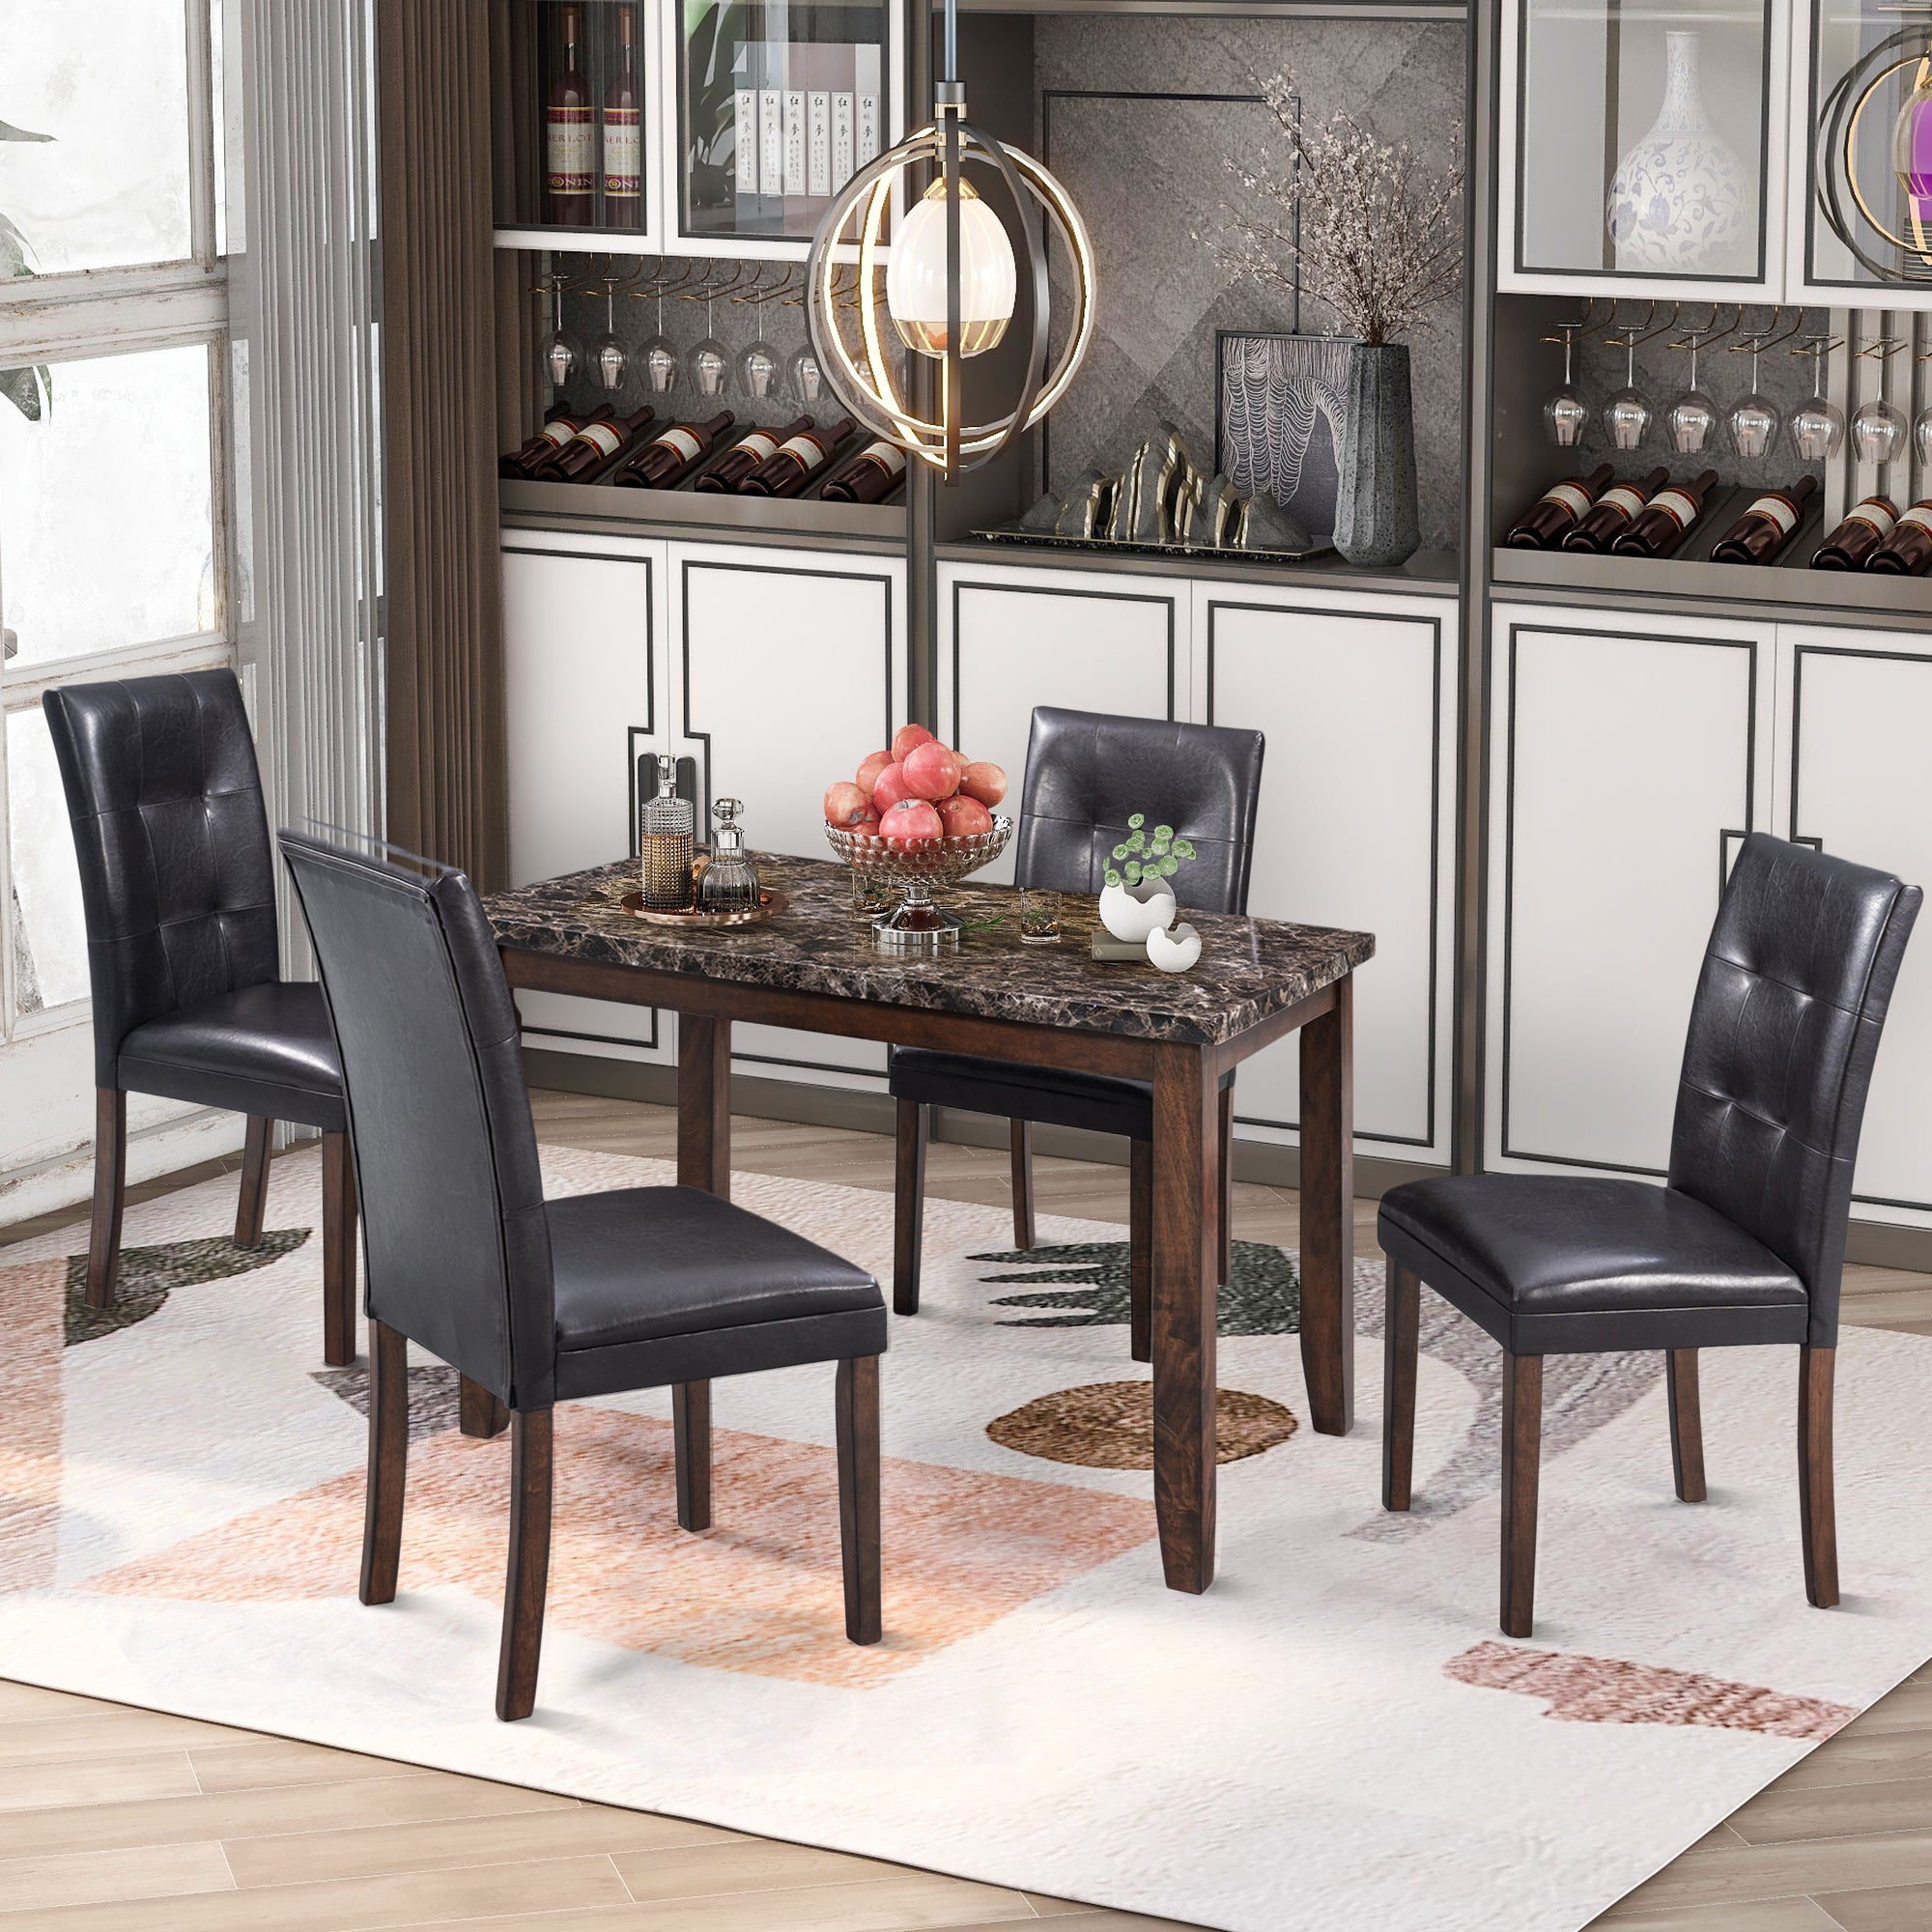 Marble 5-Piece Dining Set Table with 4 Thicken Chairs